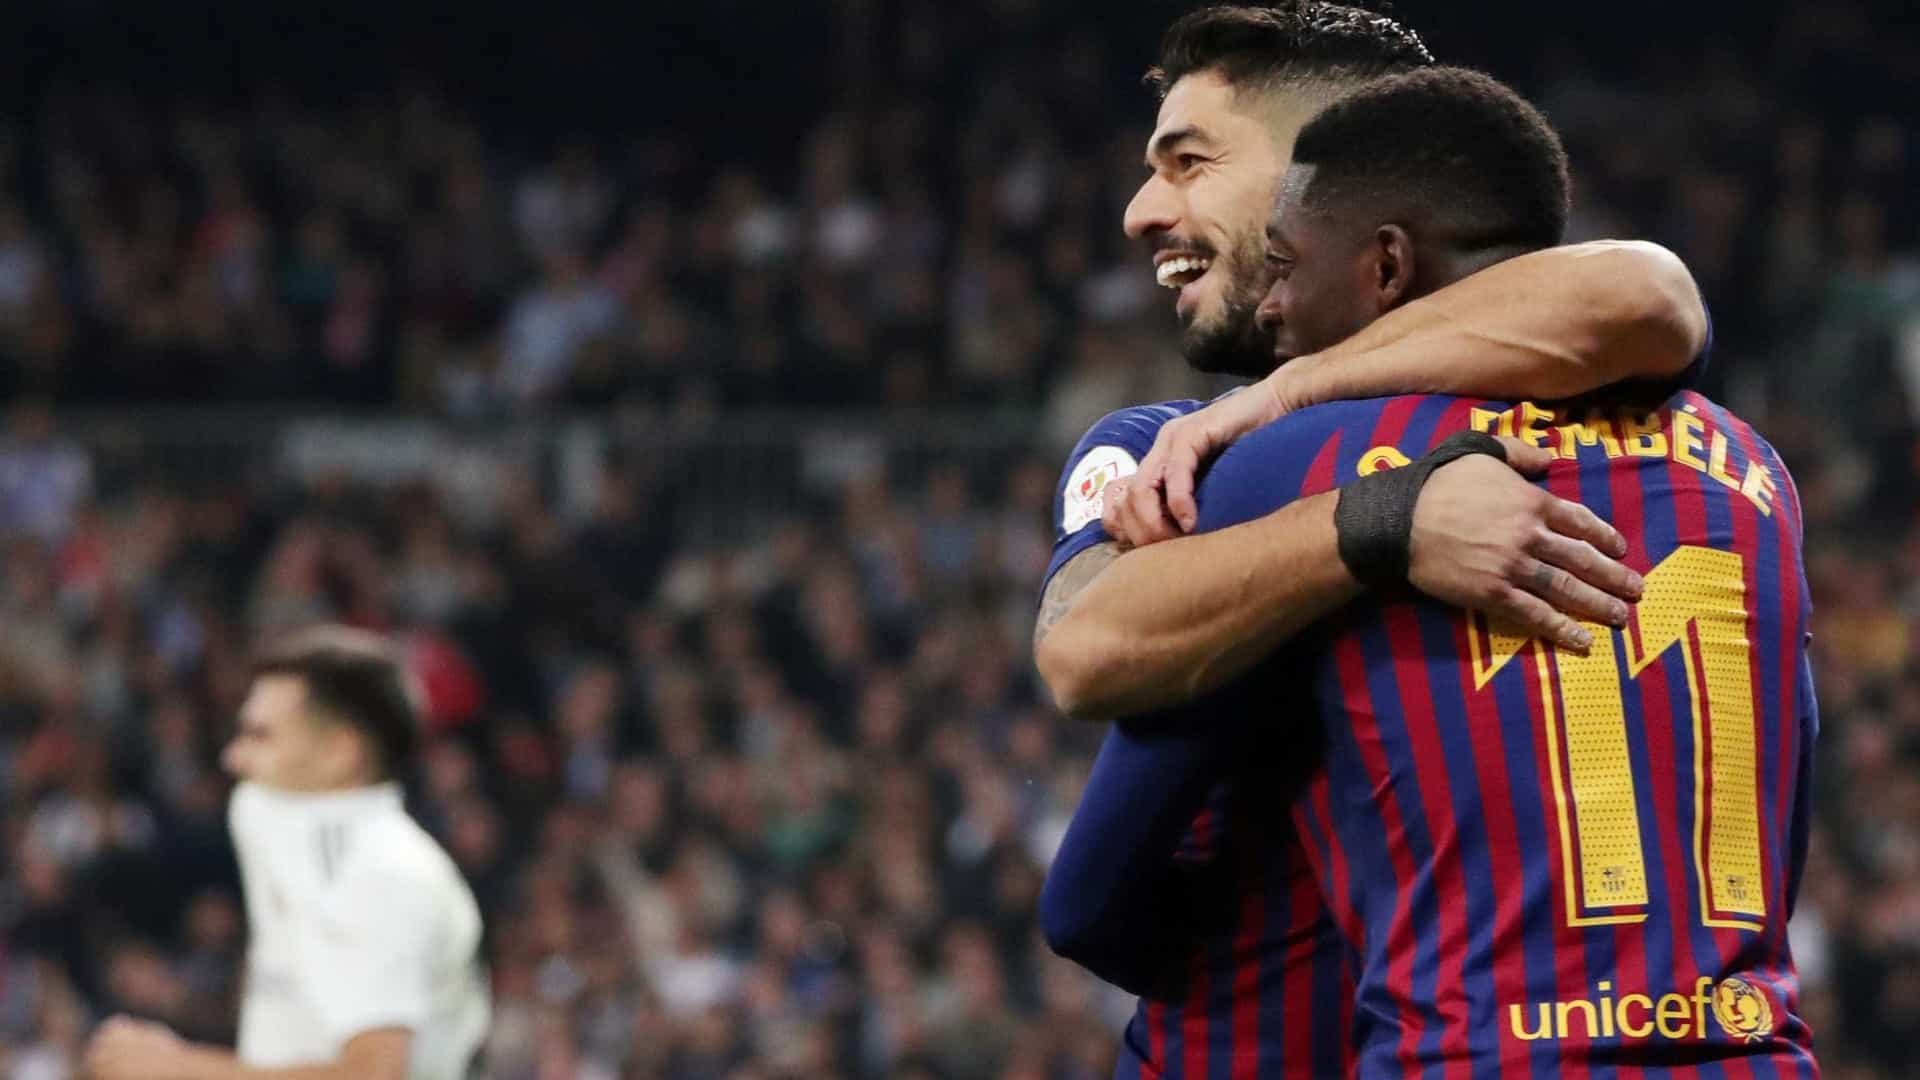 Vinícius Júnior perde chances, Suárez decide e Barcelona vai à final